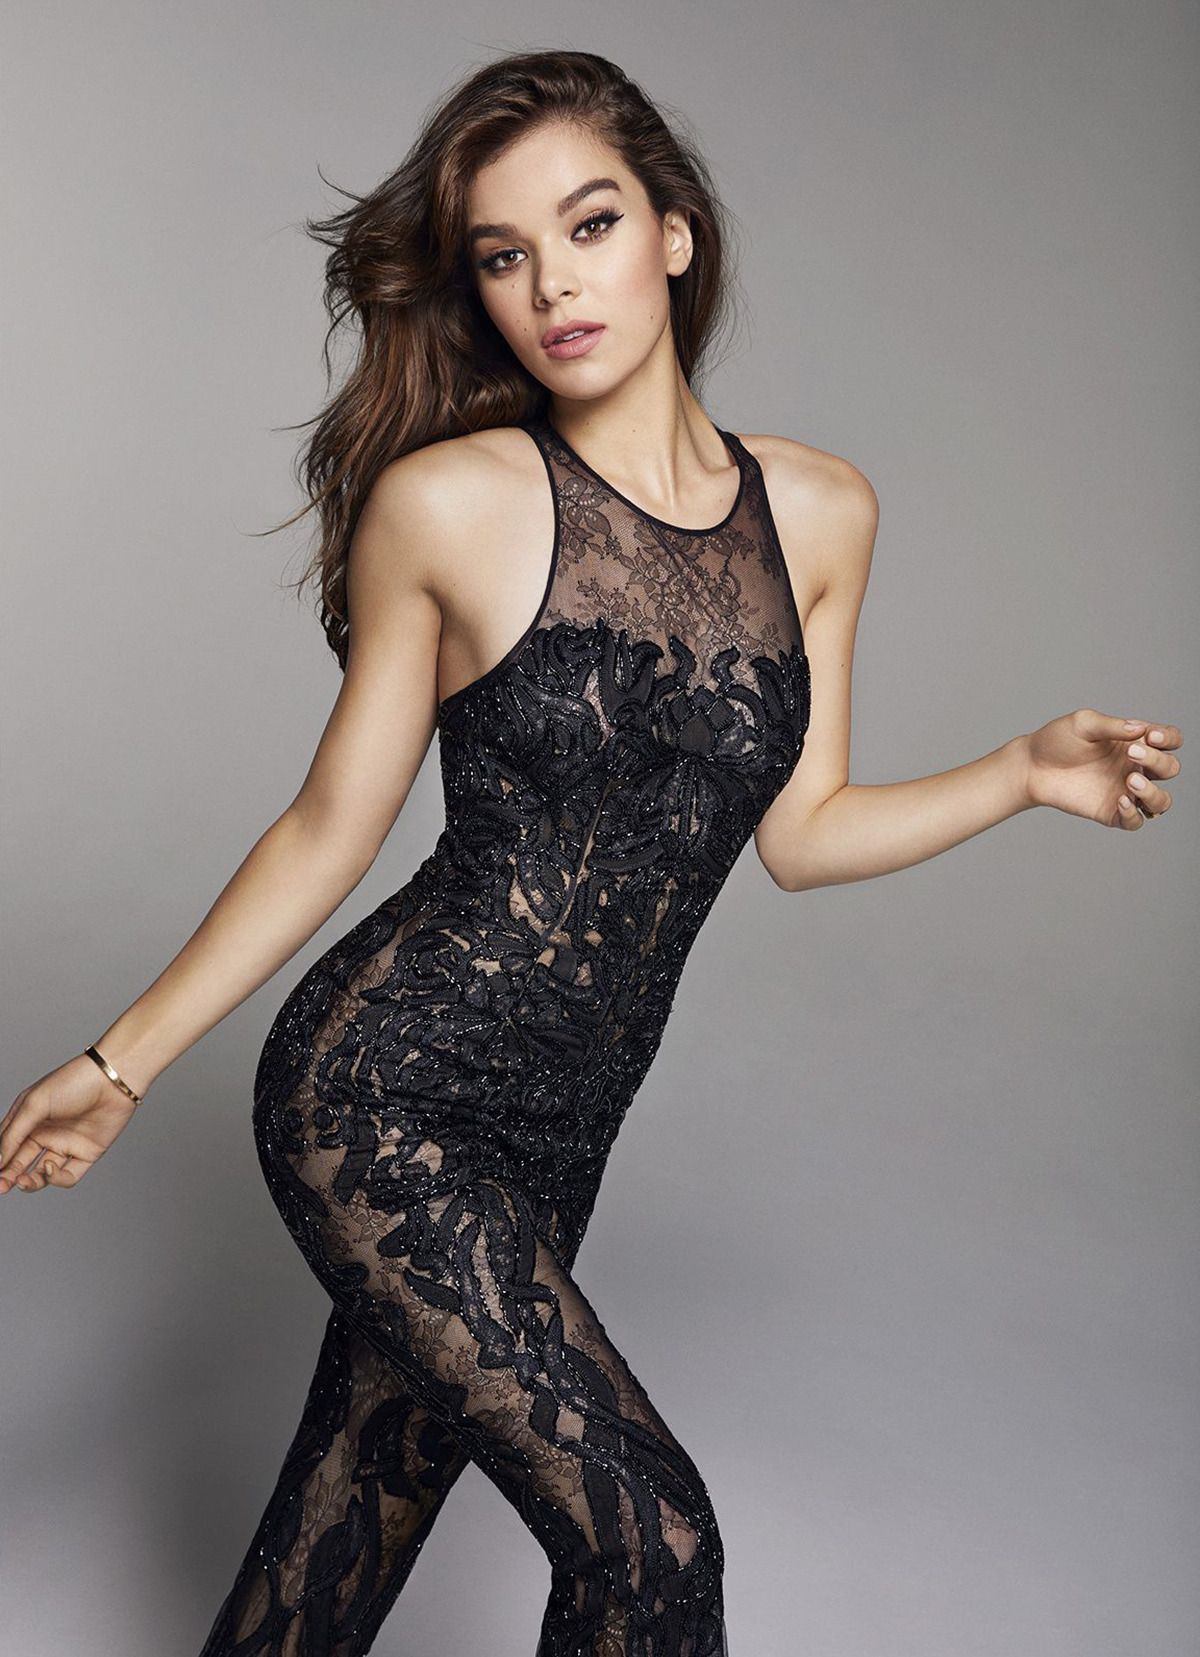 Hot Hailee Steinfeld nude (77 pics), Fappening